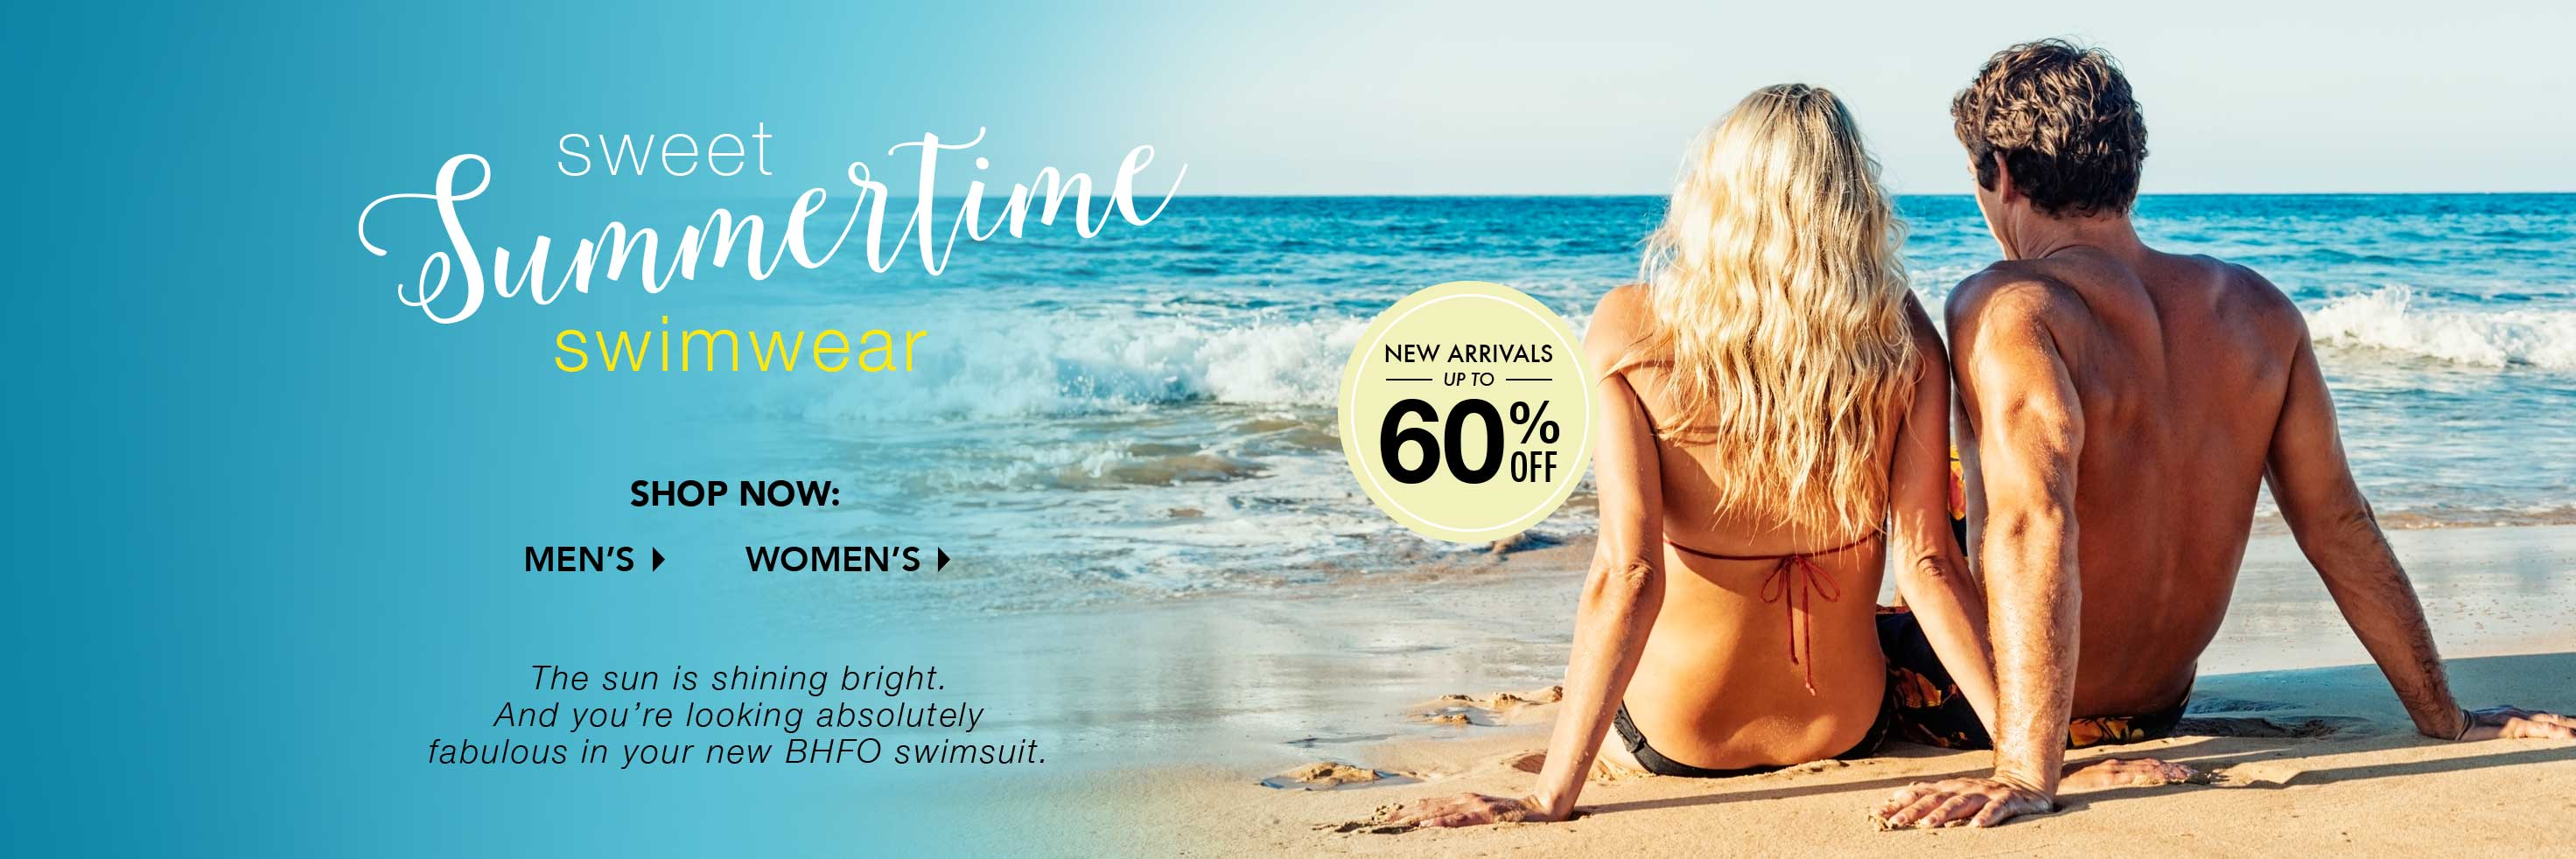 Sweet Summertime Swimwear - Up to 20% off!